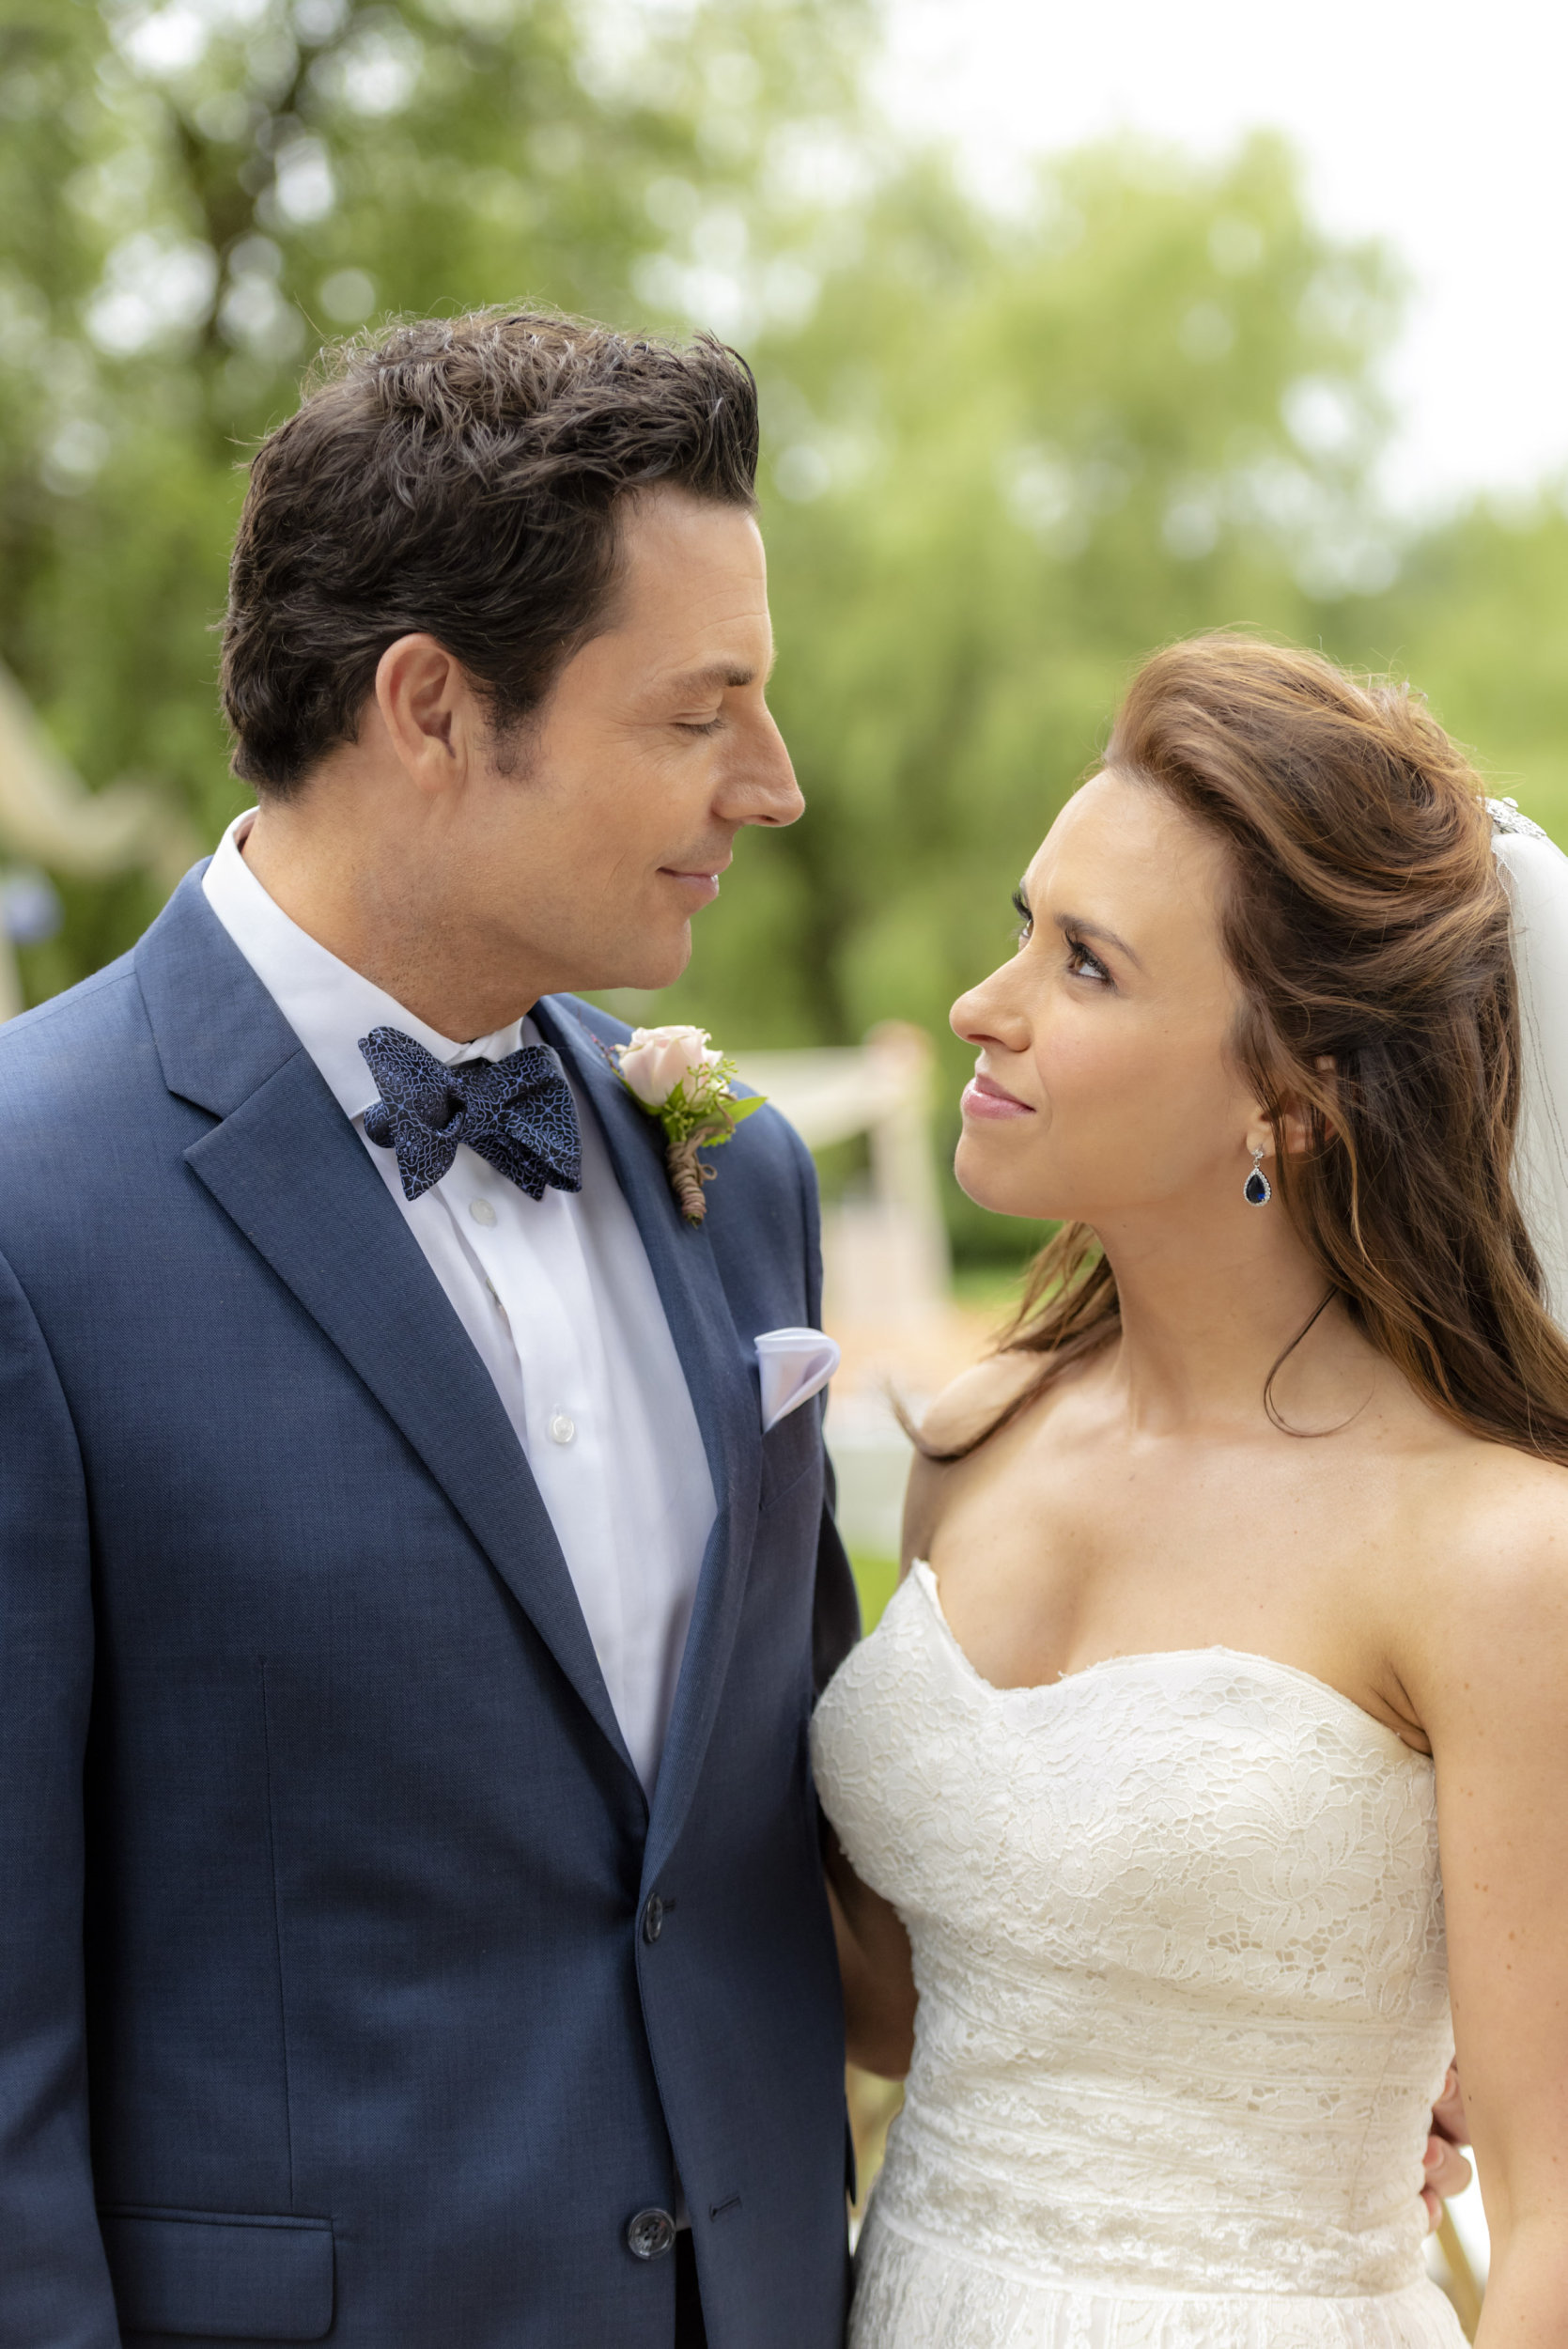 All of My Heart: The Wedding - About